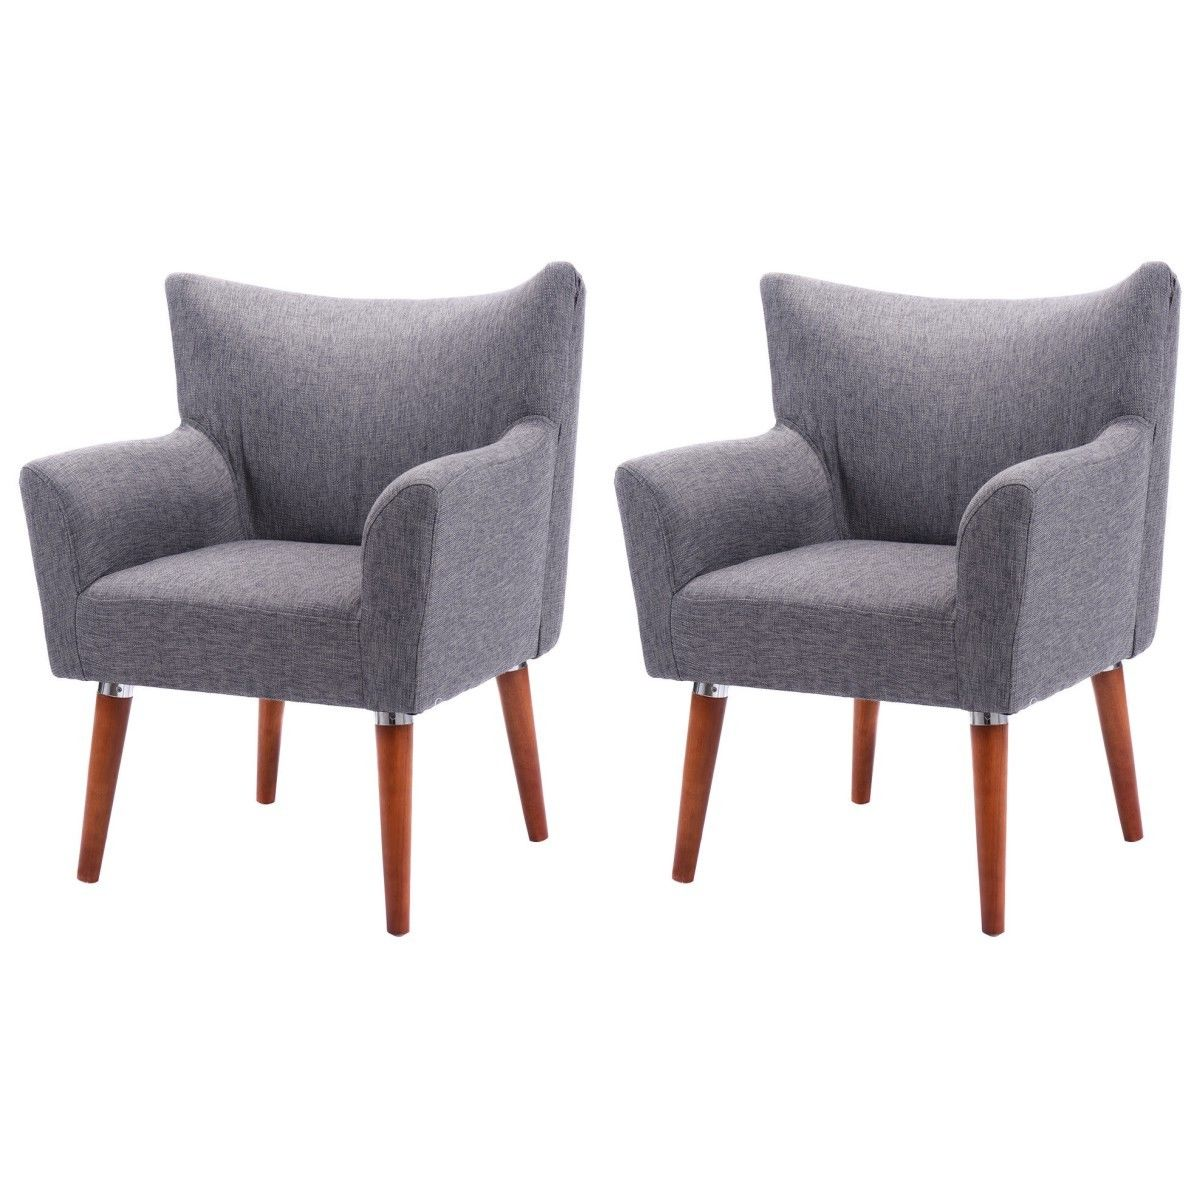 Giantex Set Of 2 Leisure Arm Chair Single Sofa Couch Seat Modern Home Chairs Garden Living Room Furniture Sofa 2*HW51502COFFEE european leisure tables and chairs fashion leisure sofa chair small coffee table beauty salon to discuss the single chair 3pcs